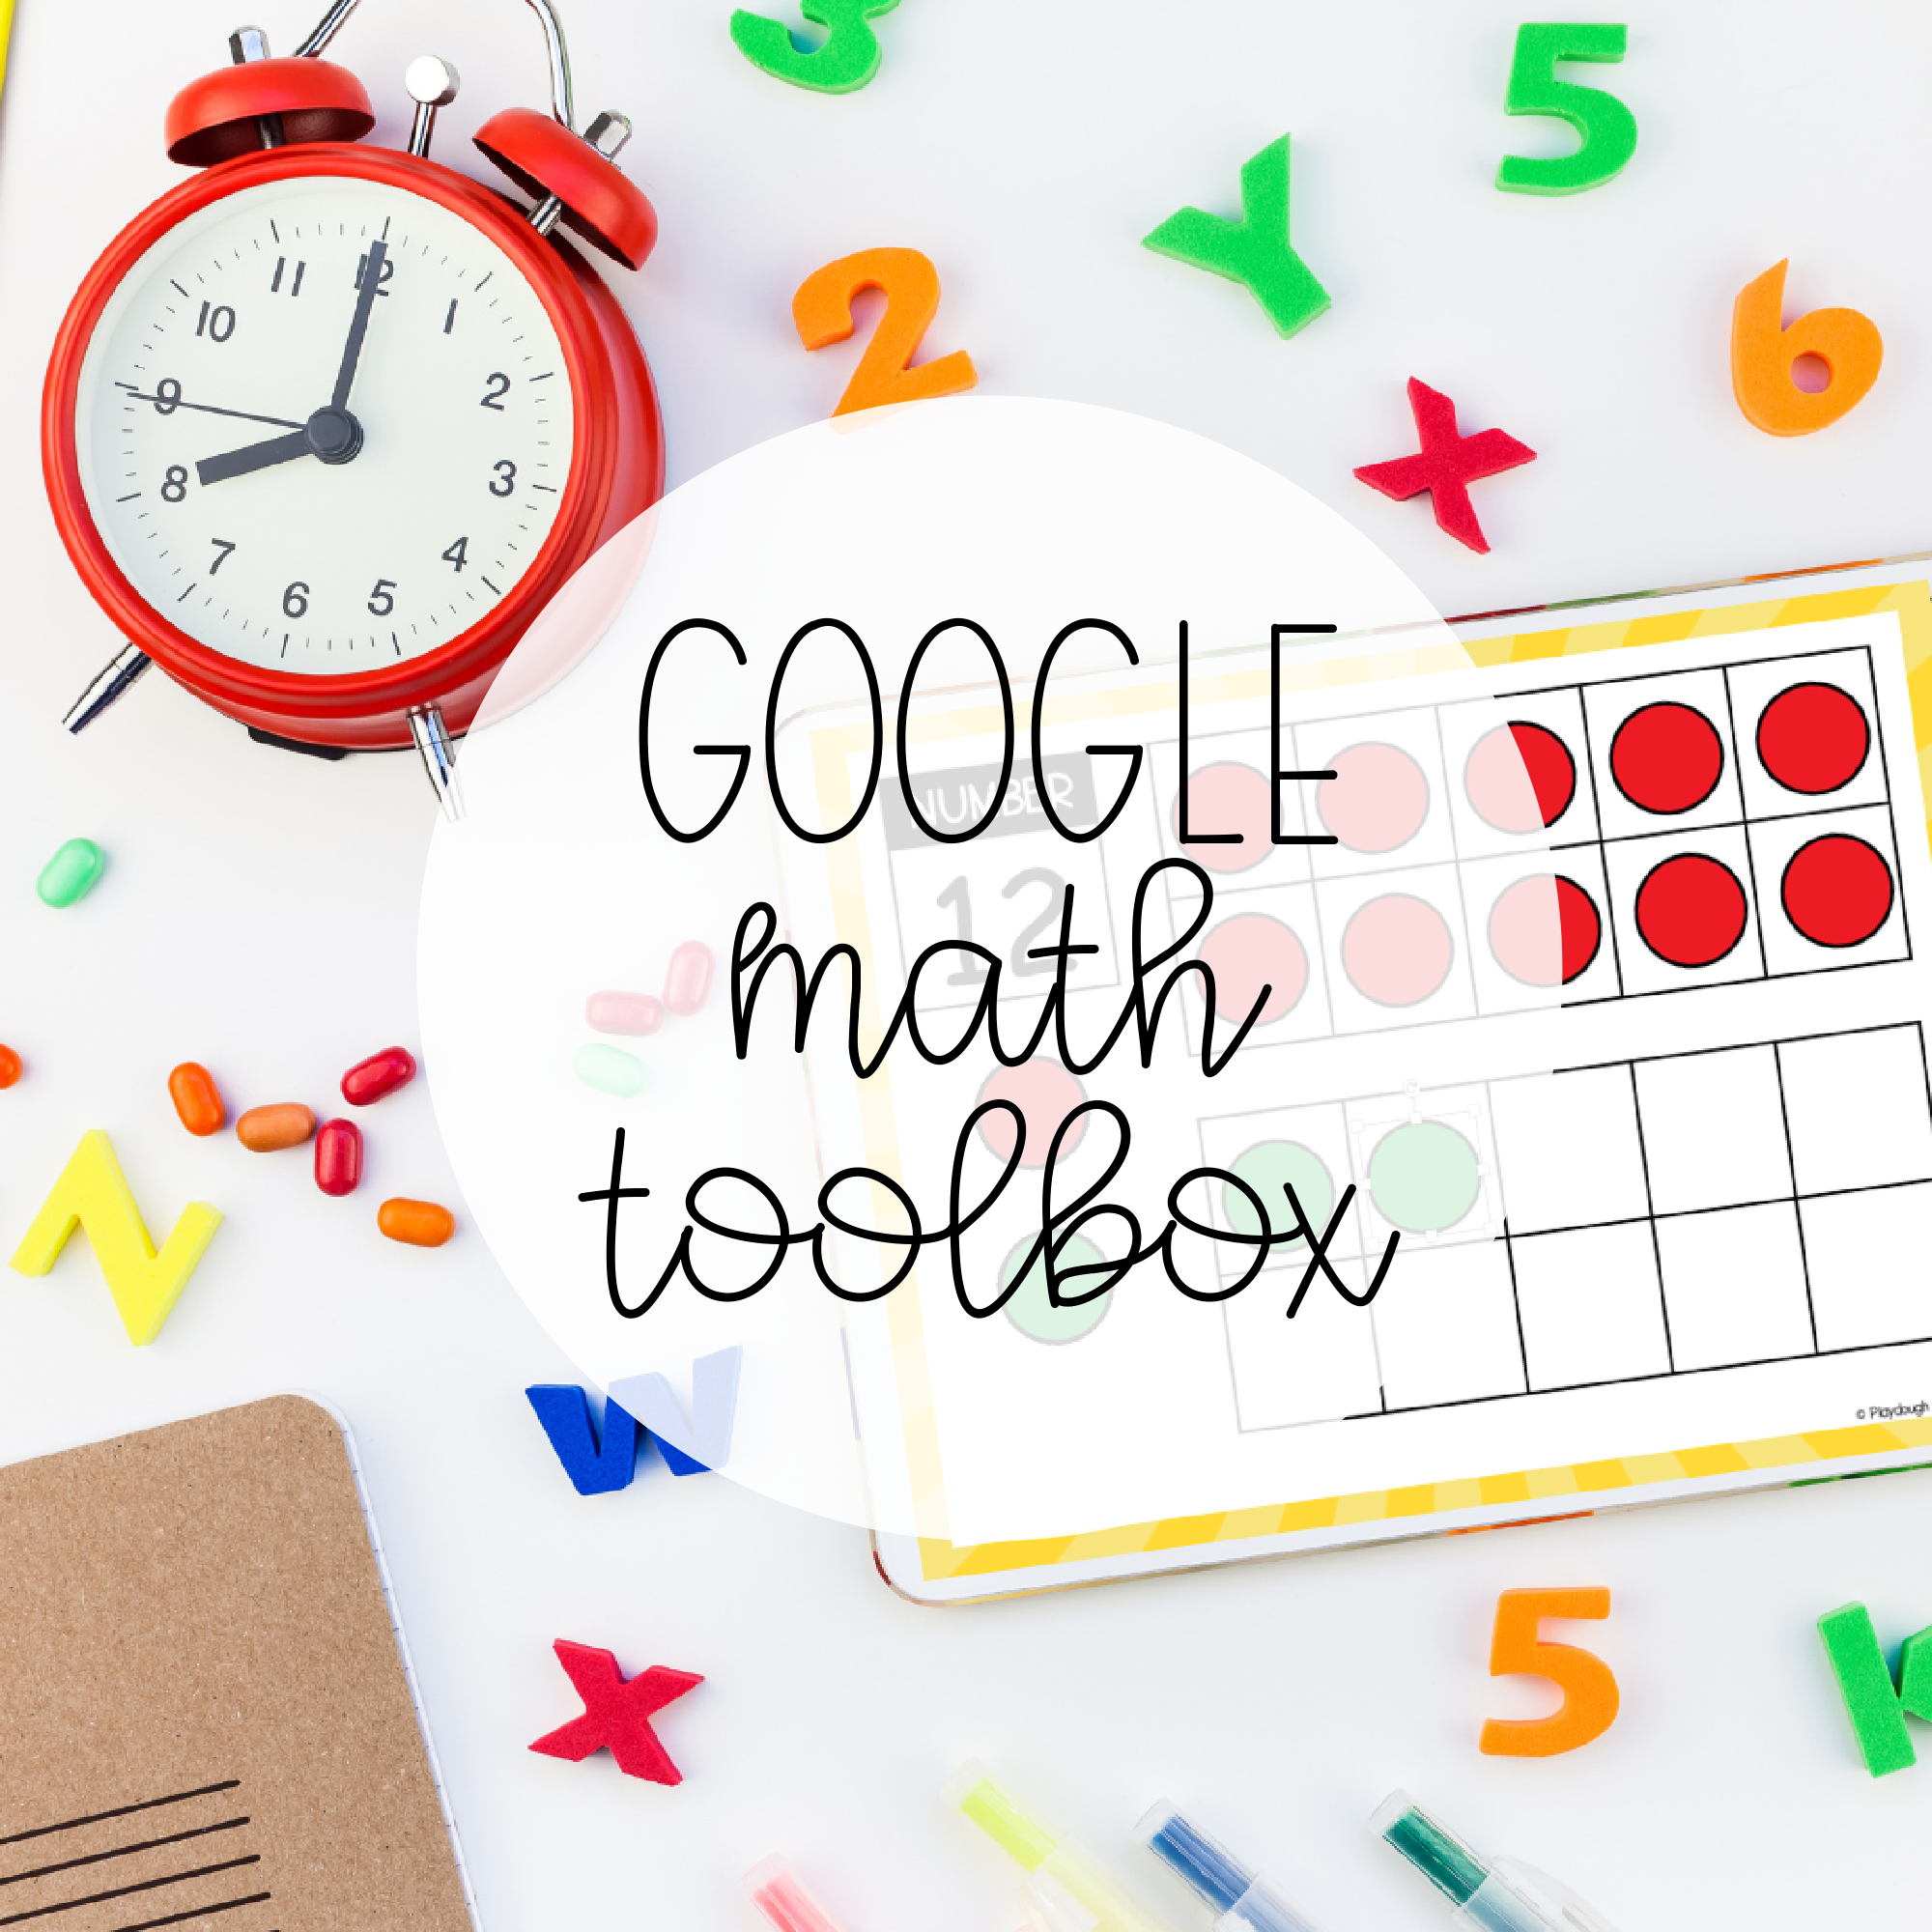 Math Toolbox for Google